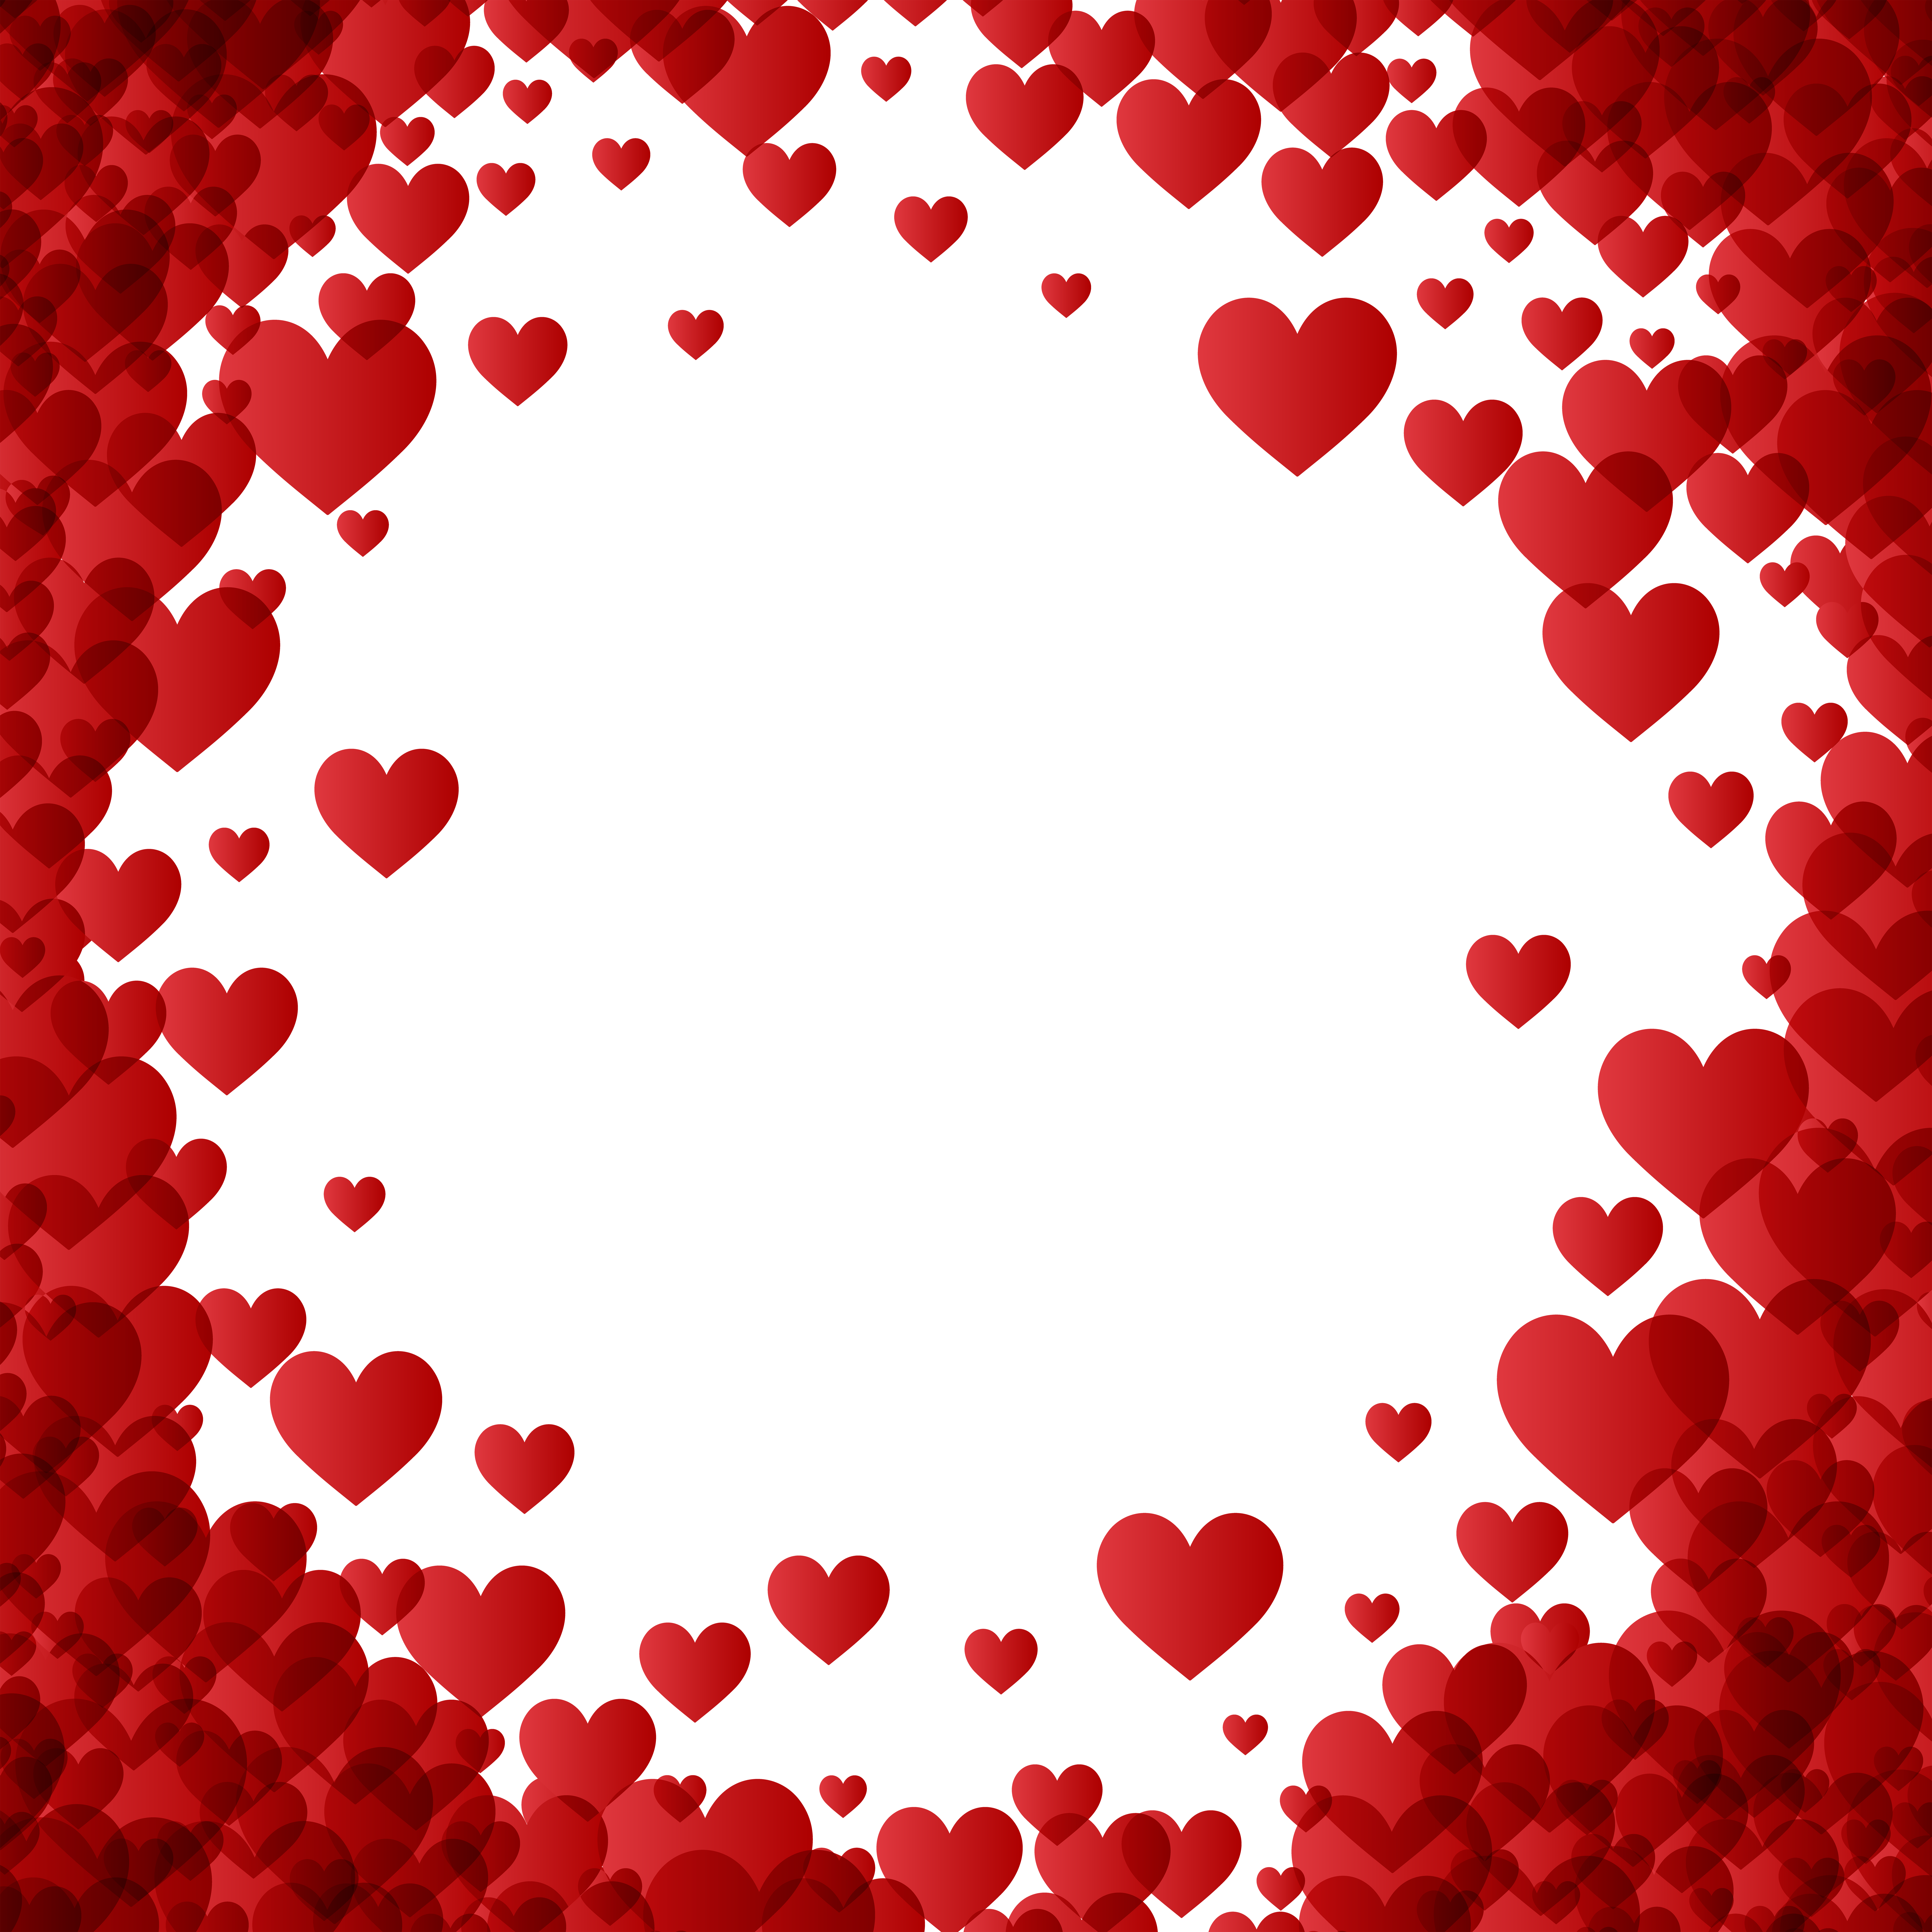 Clipart heart border svg library library Valentine's Day Heart Border Frame Transparent Image | Gallery ... svg library library